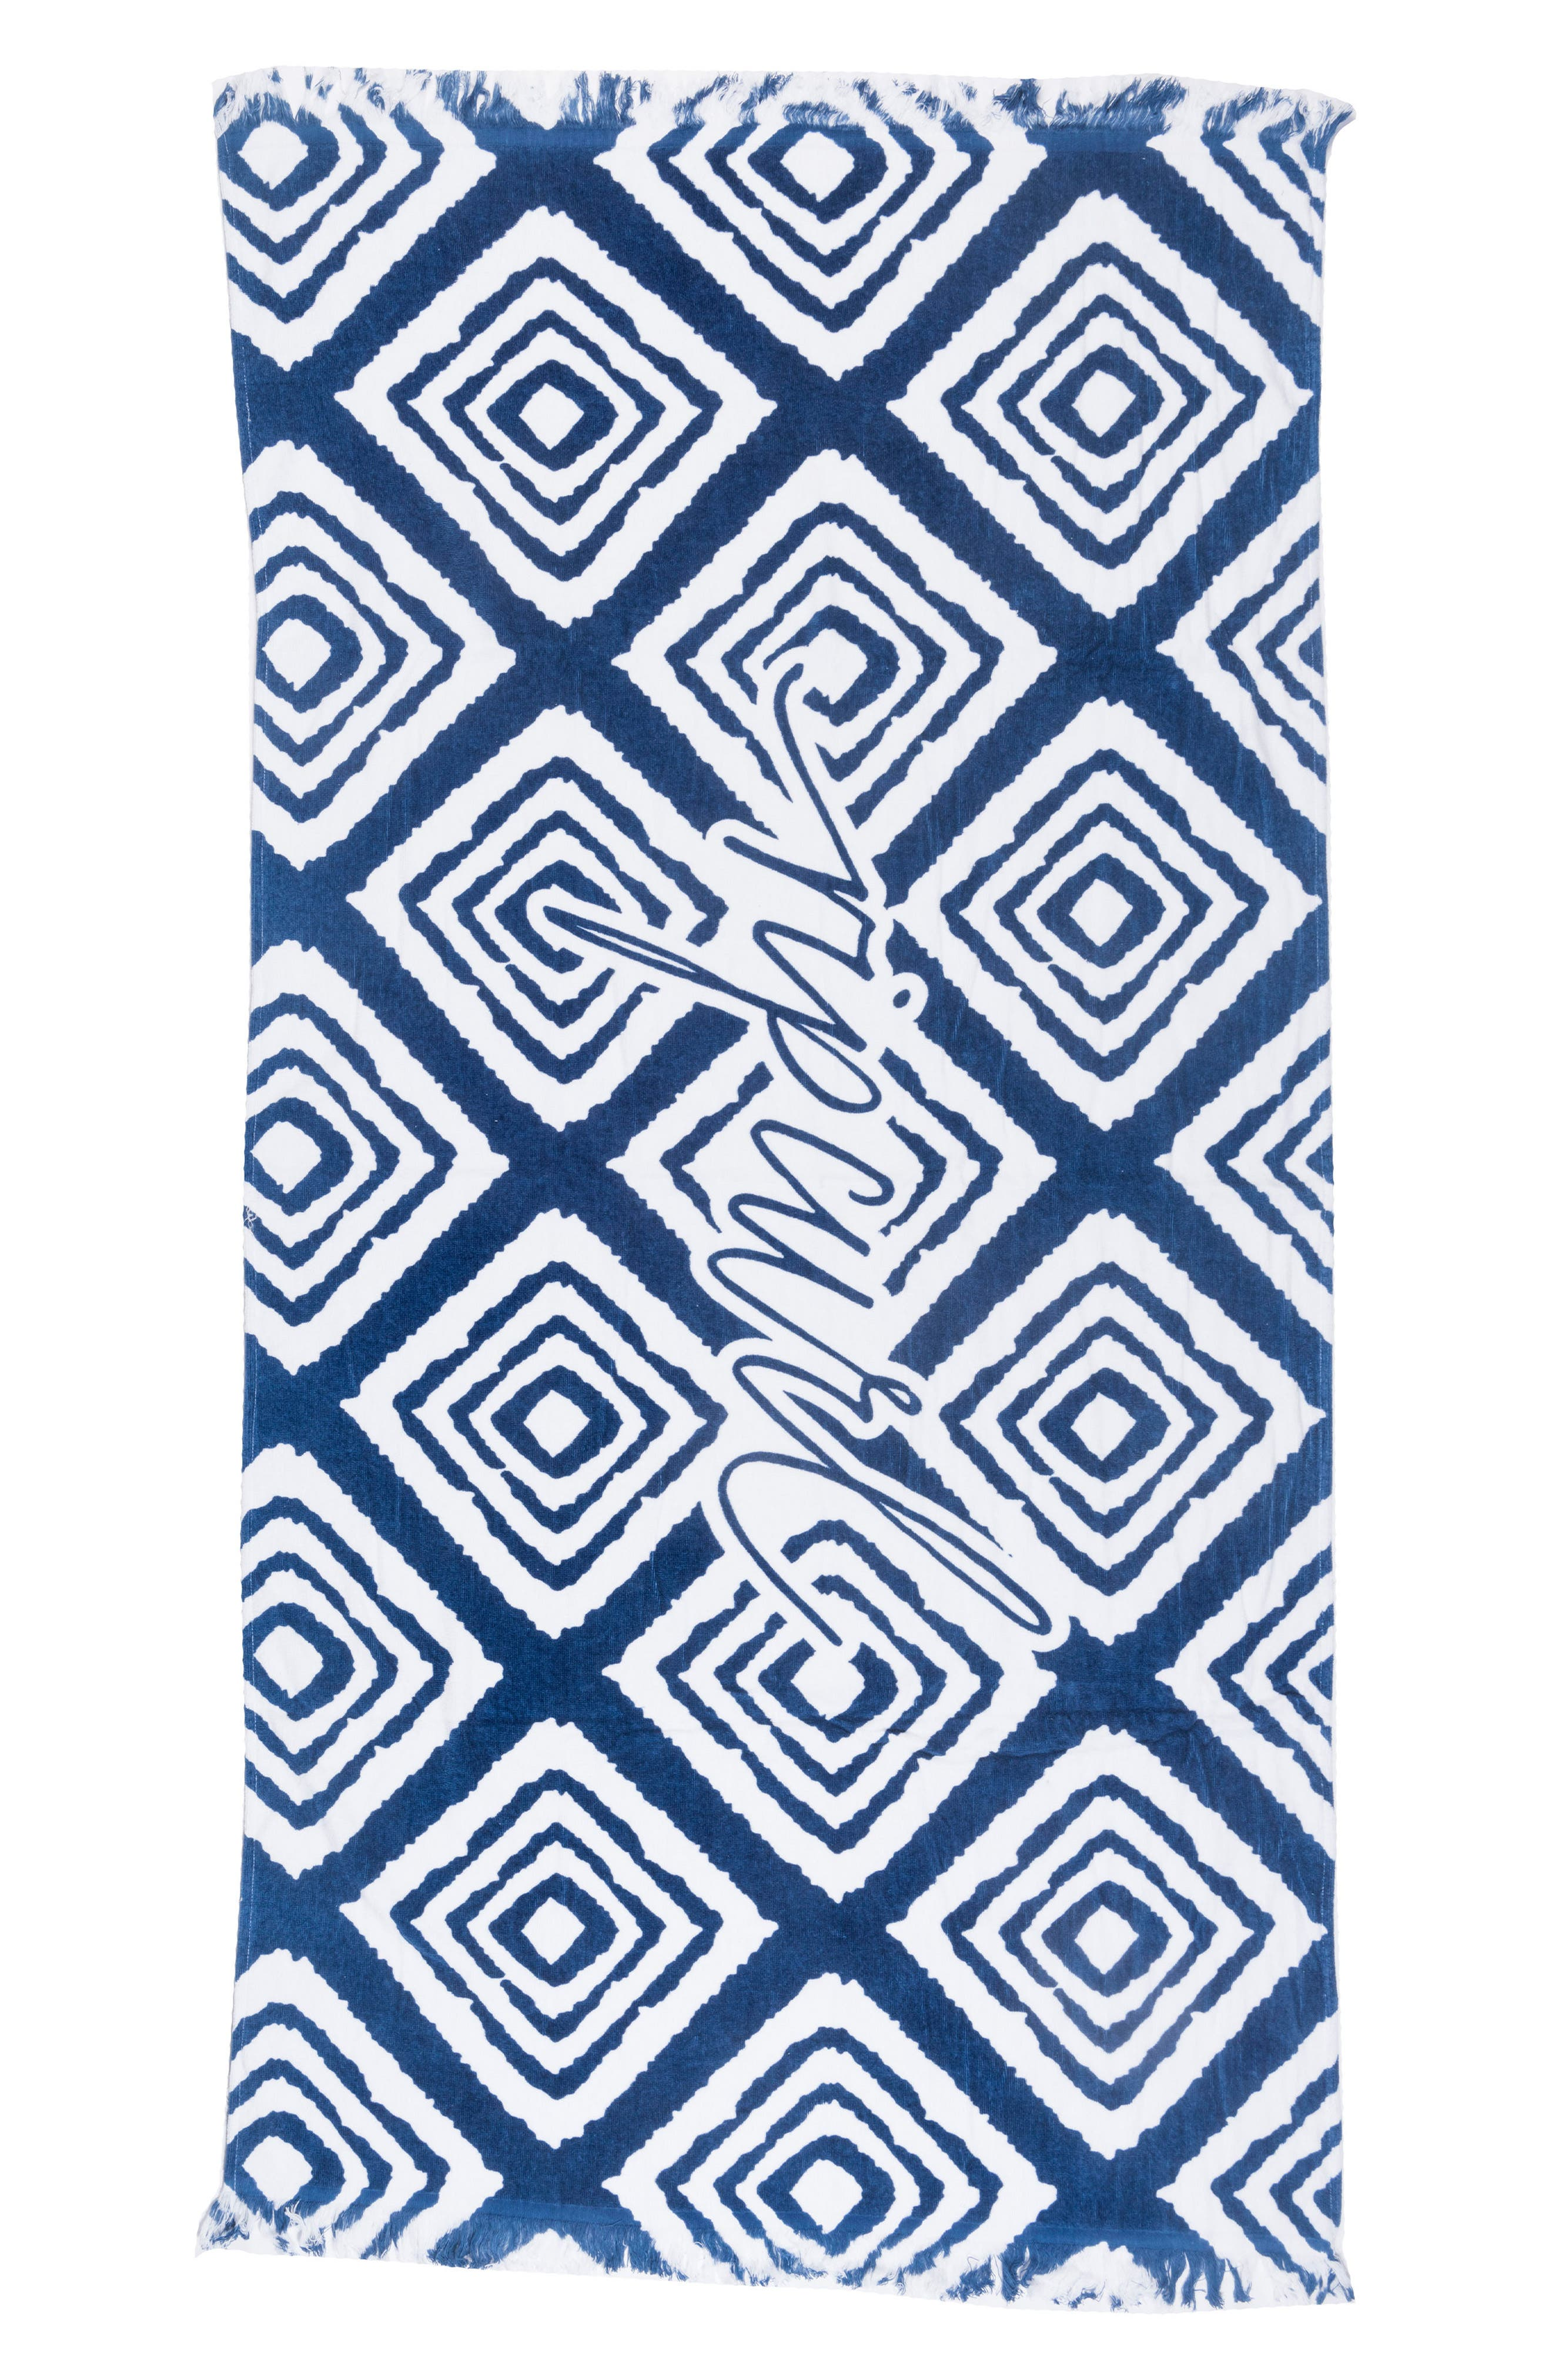 Bazaar Beach Towel,                             Main thumbnail 1, color,                             400